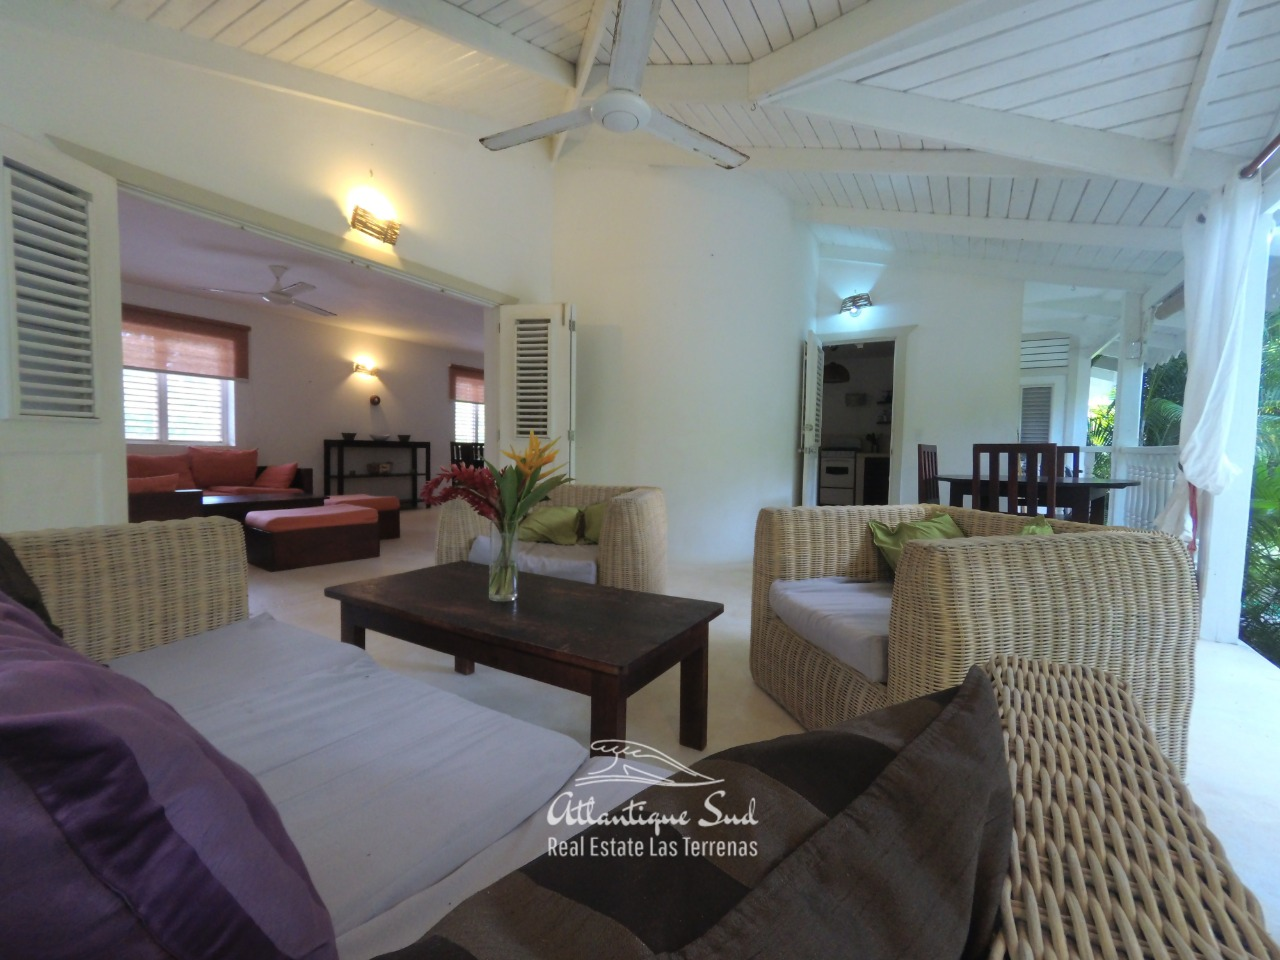 Villa for sale steps from the beach in las terrenas 9.jpeg